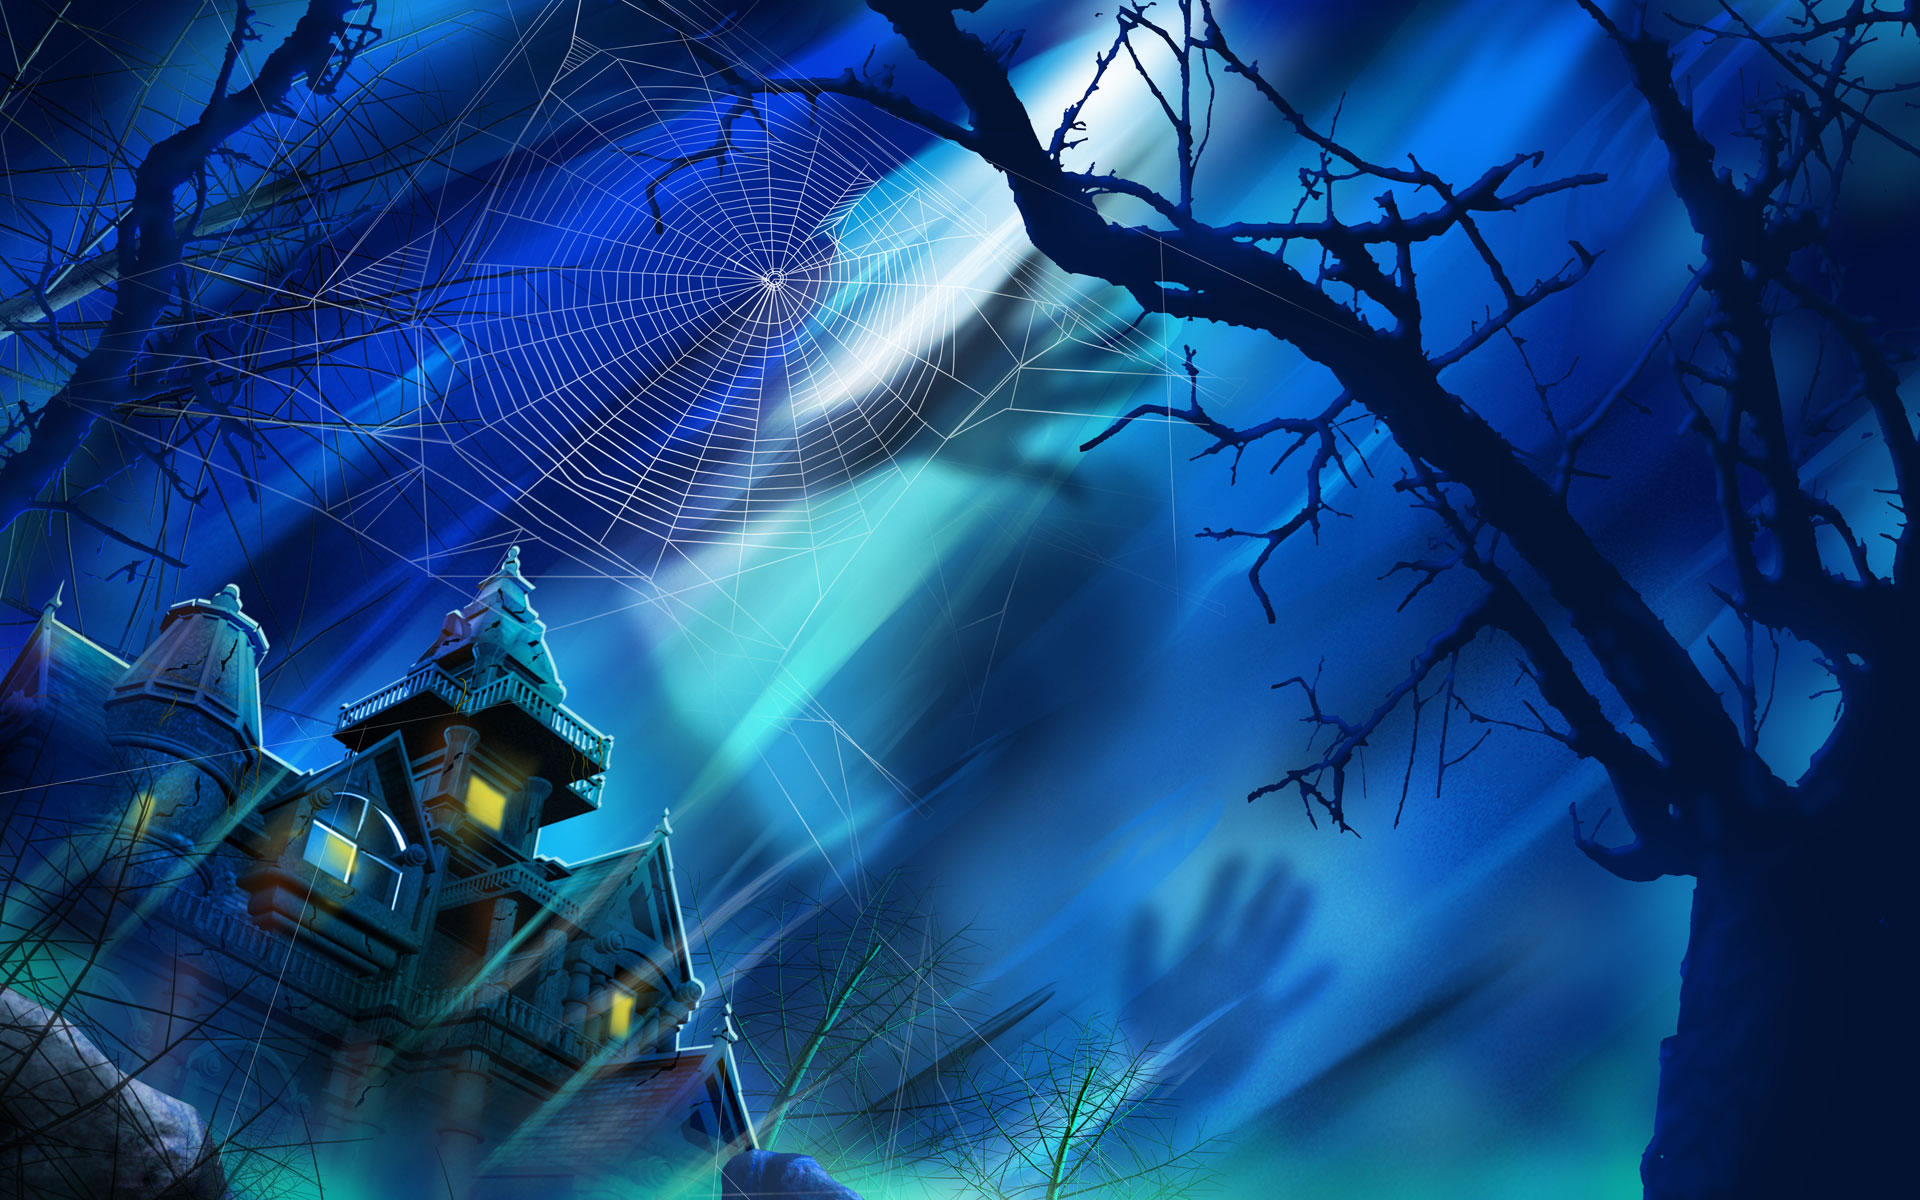 download spookhuis wallpaper